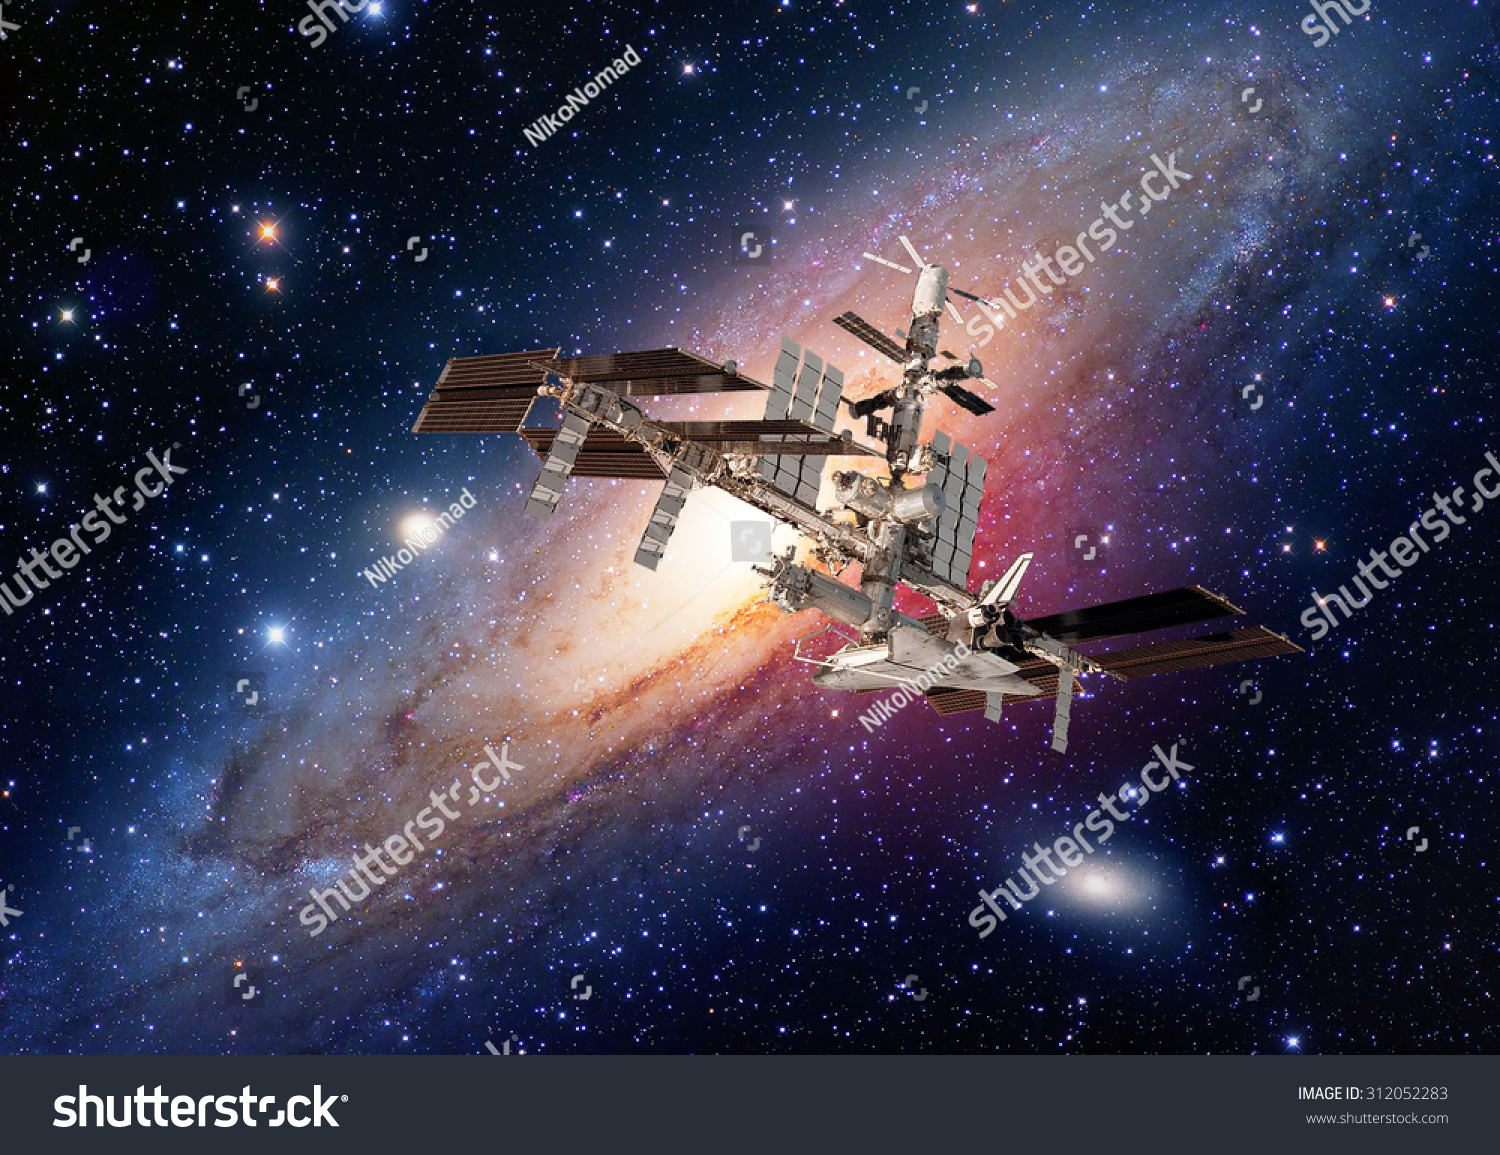 Satellite space station spaceship spacecraft outer galaxy universe Elements of this image furnished by NASA